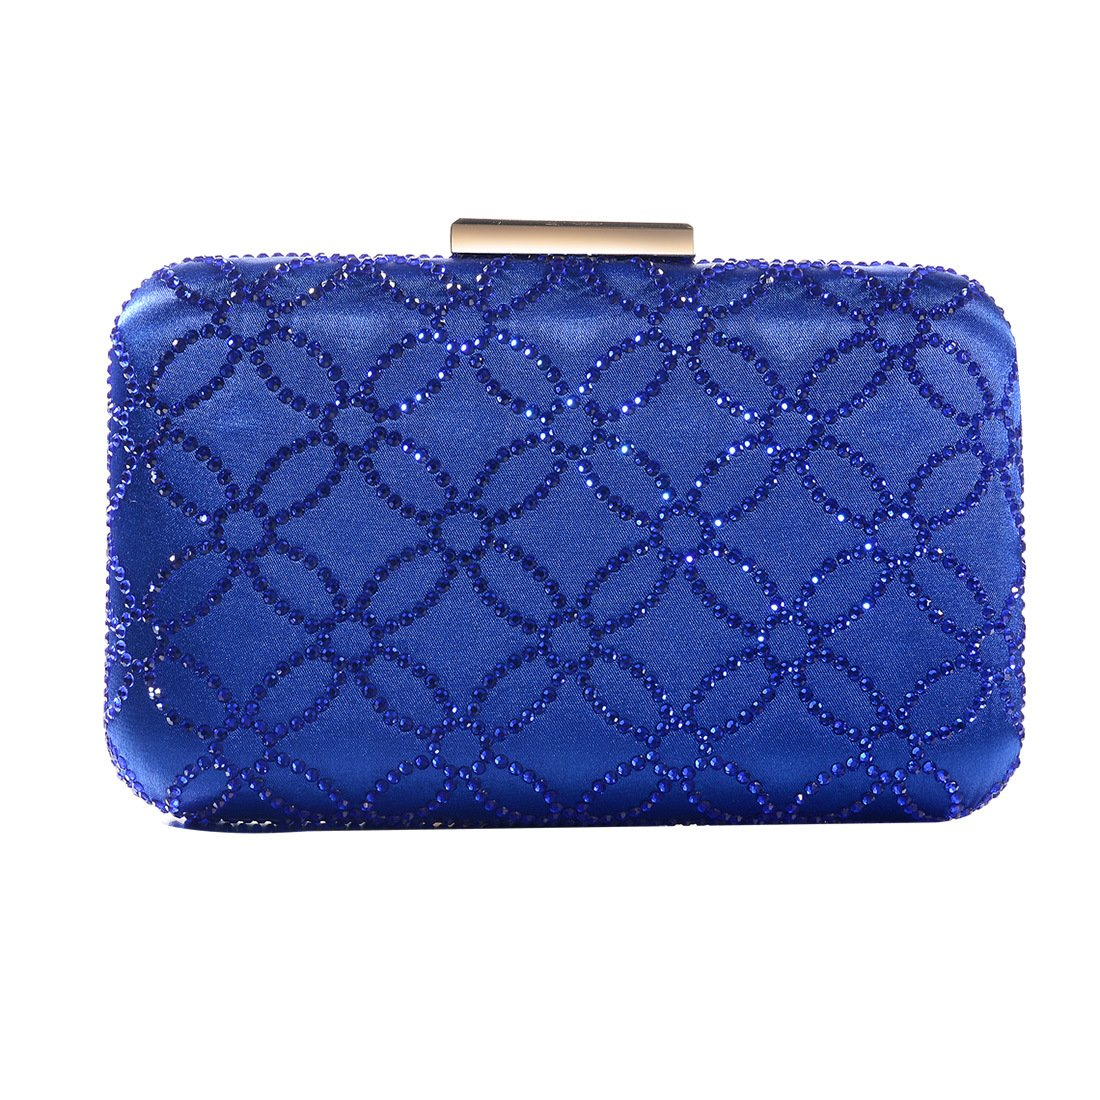 DMIX Womens Large Satin Silk Hard Clutch Evening Bag and Handbags with Crystal for Wedding Bridal Party Prom Royal Blue